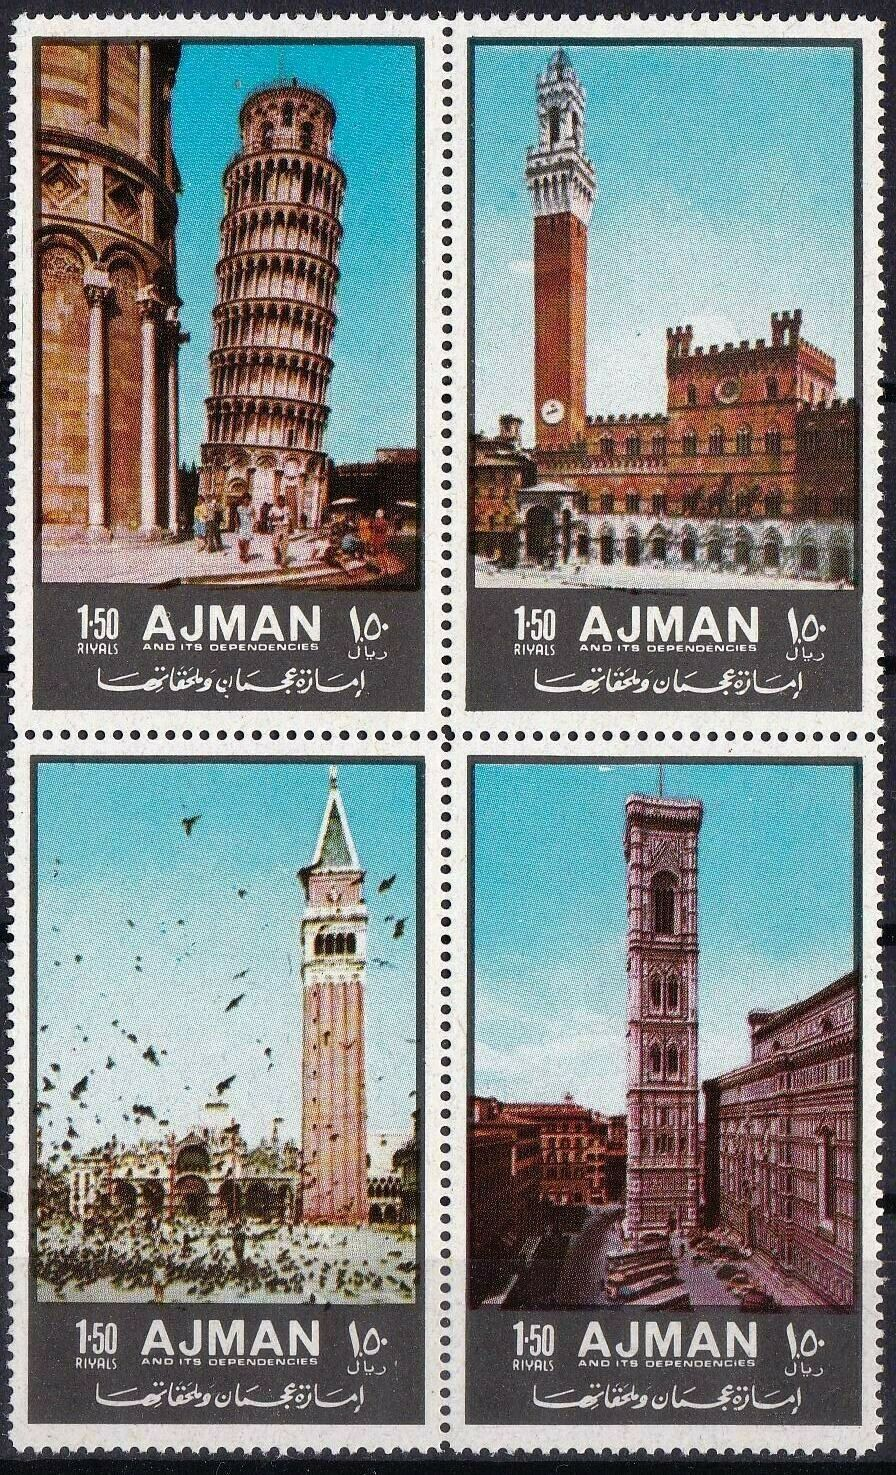 Ajman 1972 Italy Tourism Leaning Tower Of Pisa & Venice Building